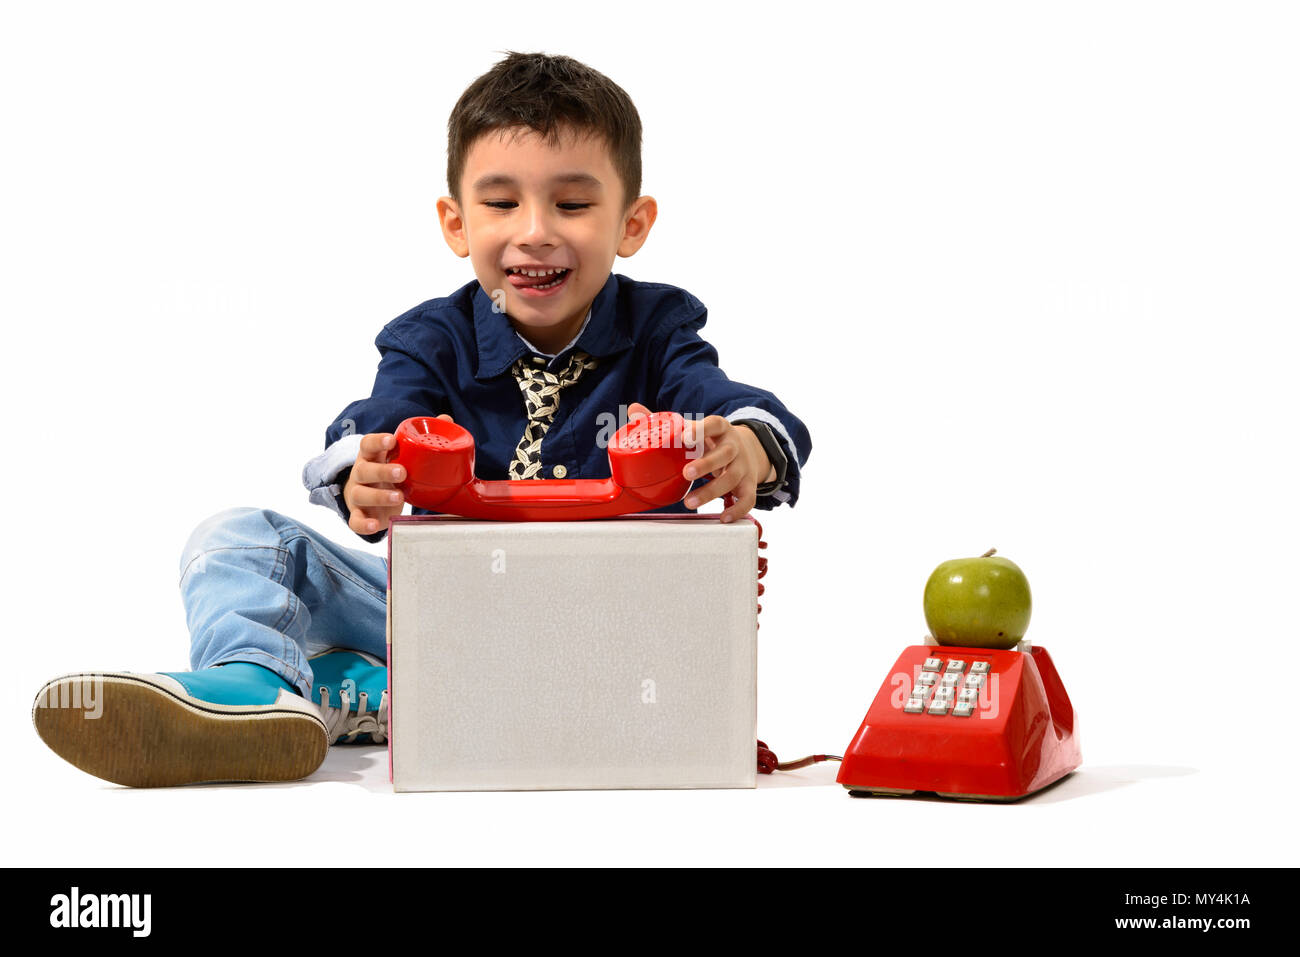 Studio shot of cute happy boy smiling while playing with old tel - Stock Image